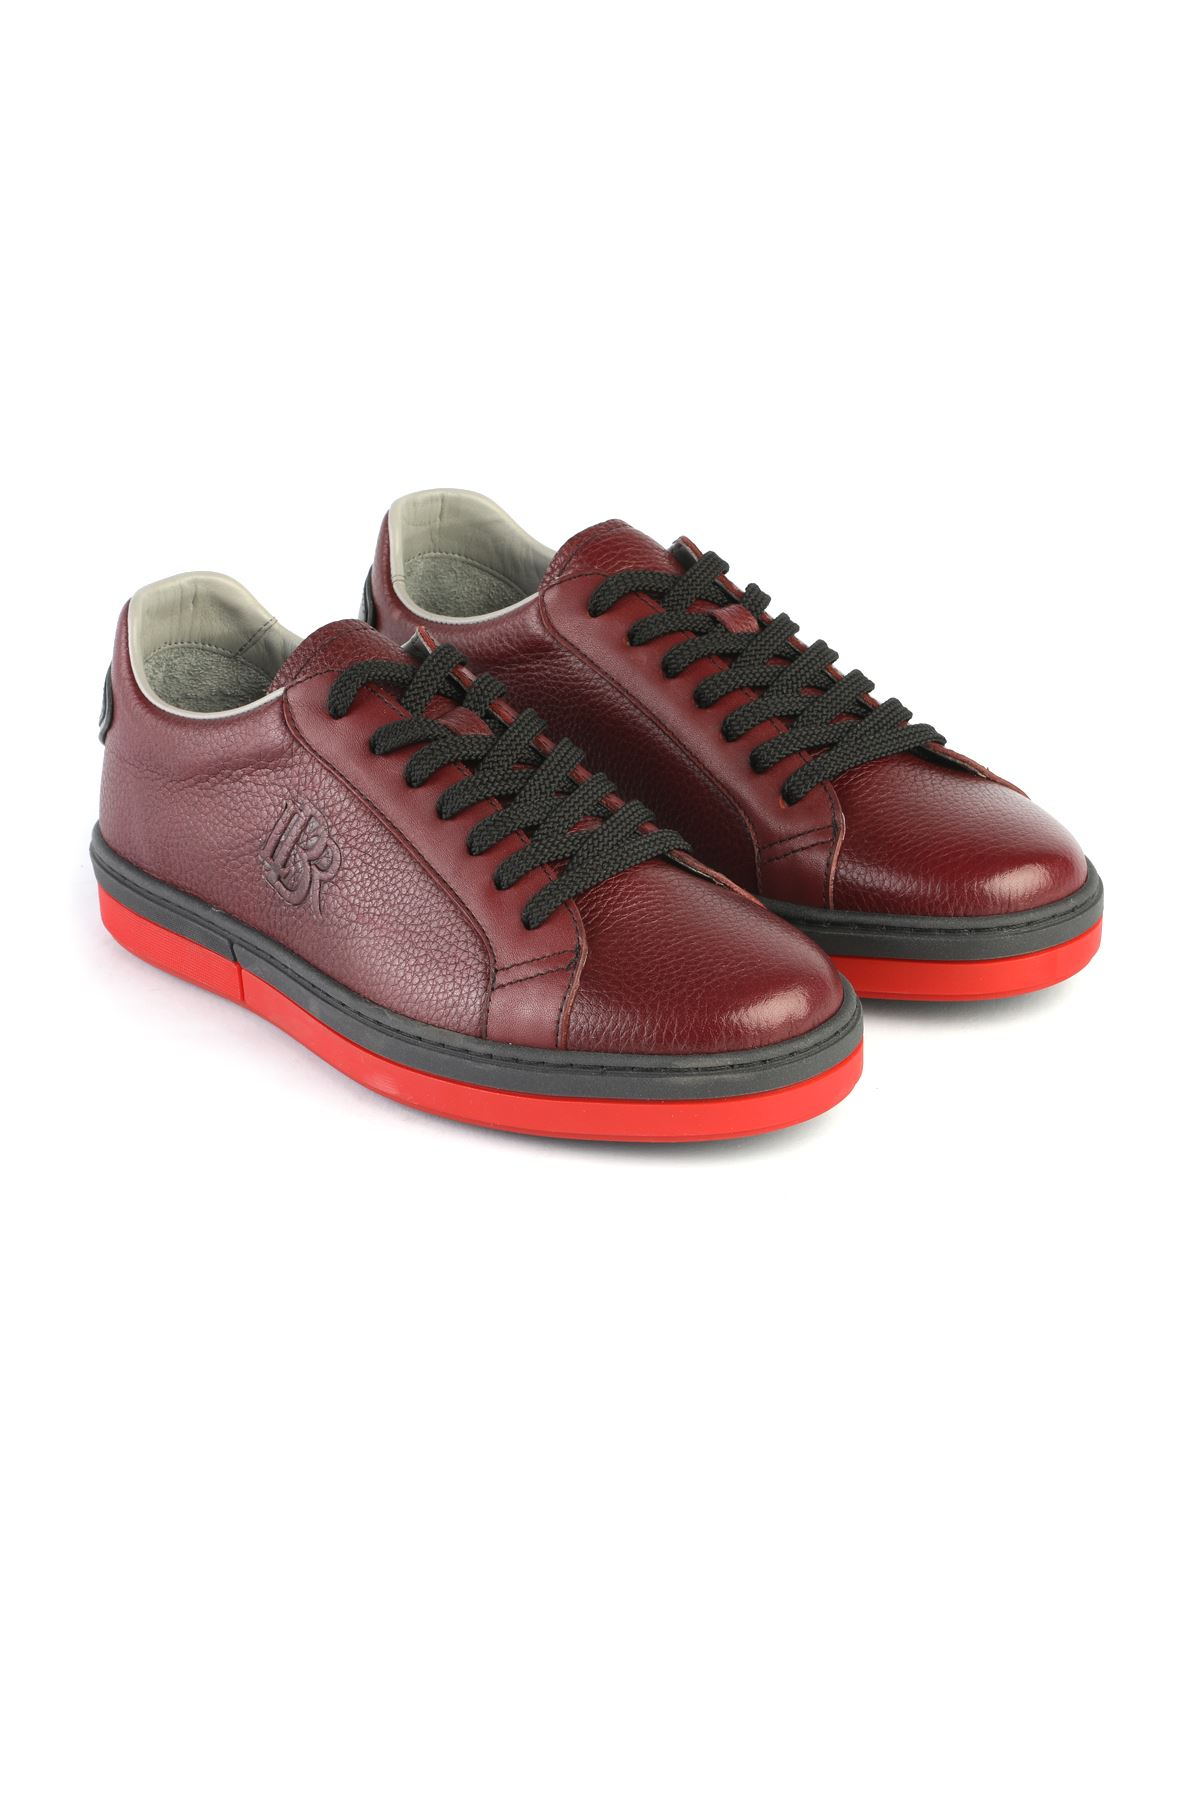 Libero 3355 Claret Red Sneakers